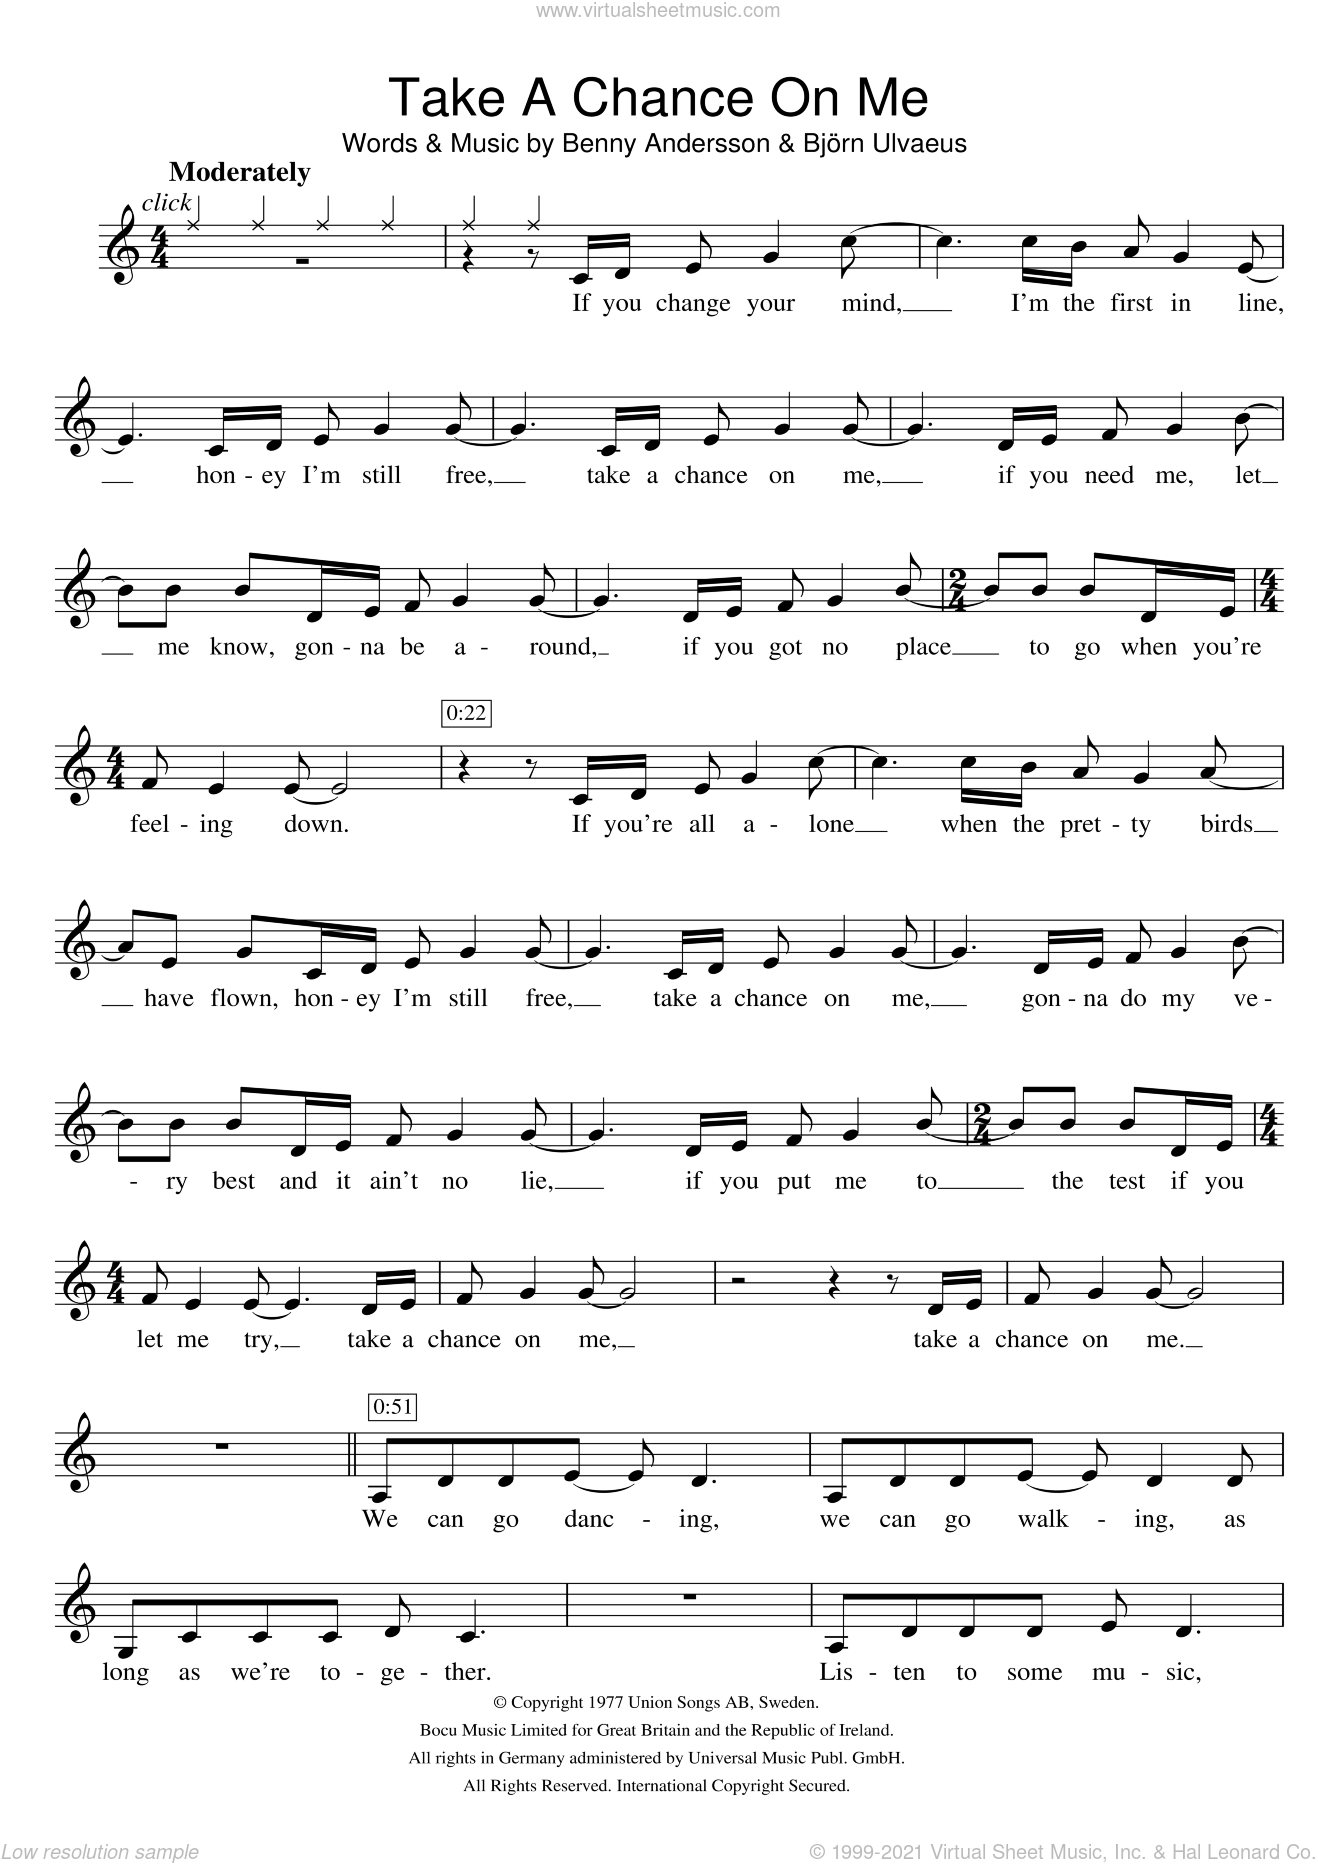 Take A Chance On Me sheet music for violin solo by ABBA, Benny Andersson and Bjorn Ulvaeus, intermediate skill level